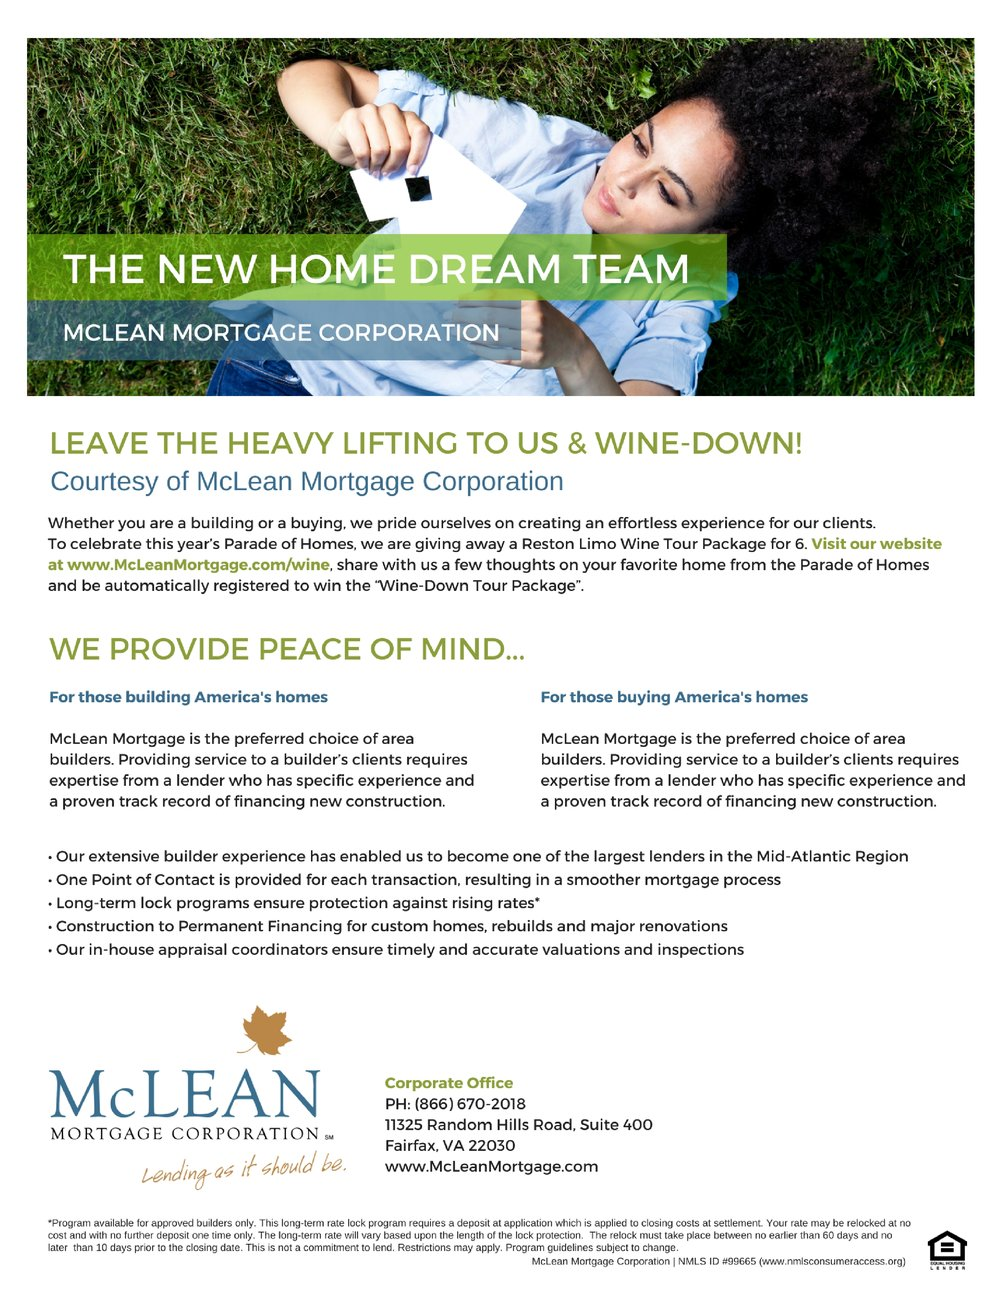 Leave the heavy lifting to us & Wine-down!Courtesy of McLean Mortgage Corporation Whether you are a building or a buying, we pride ourselves on creating an effortless experience for our clients. To celebrate t.jpg